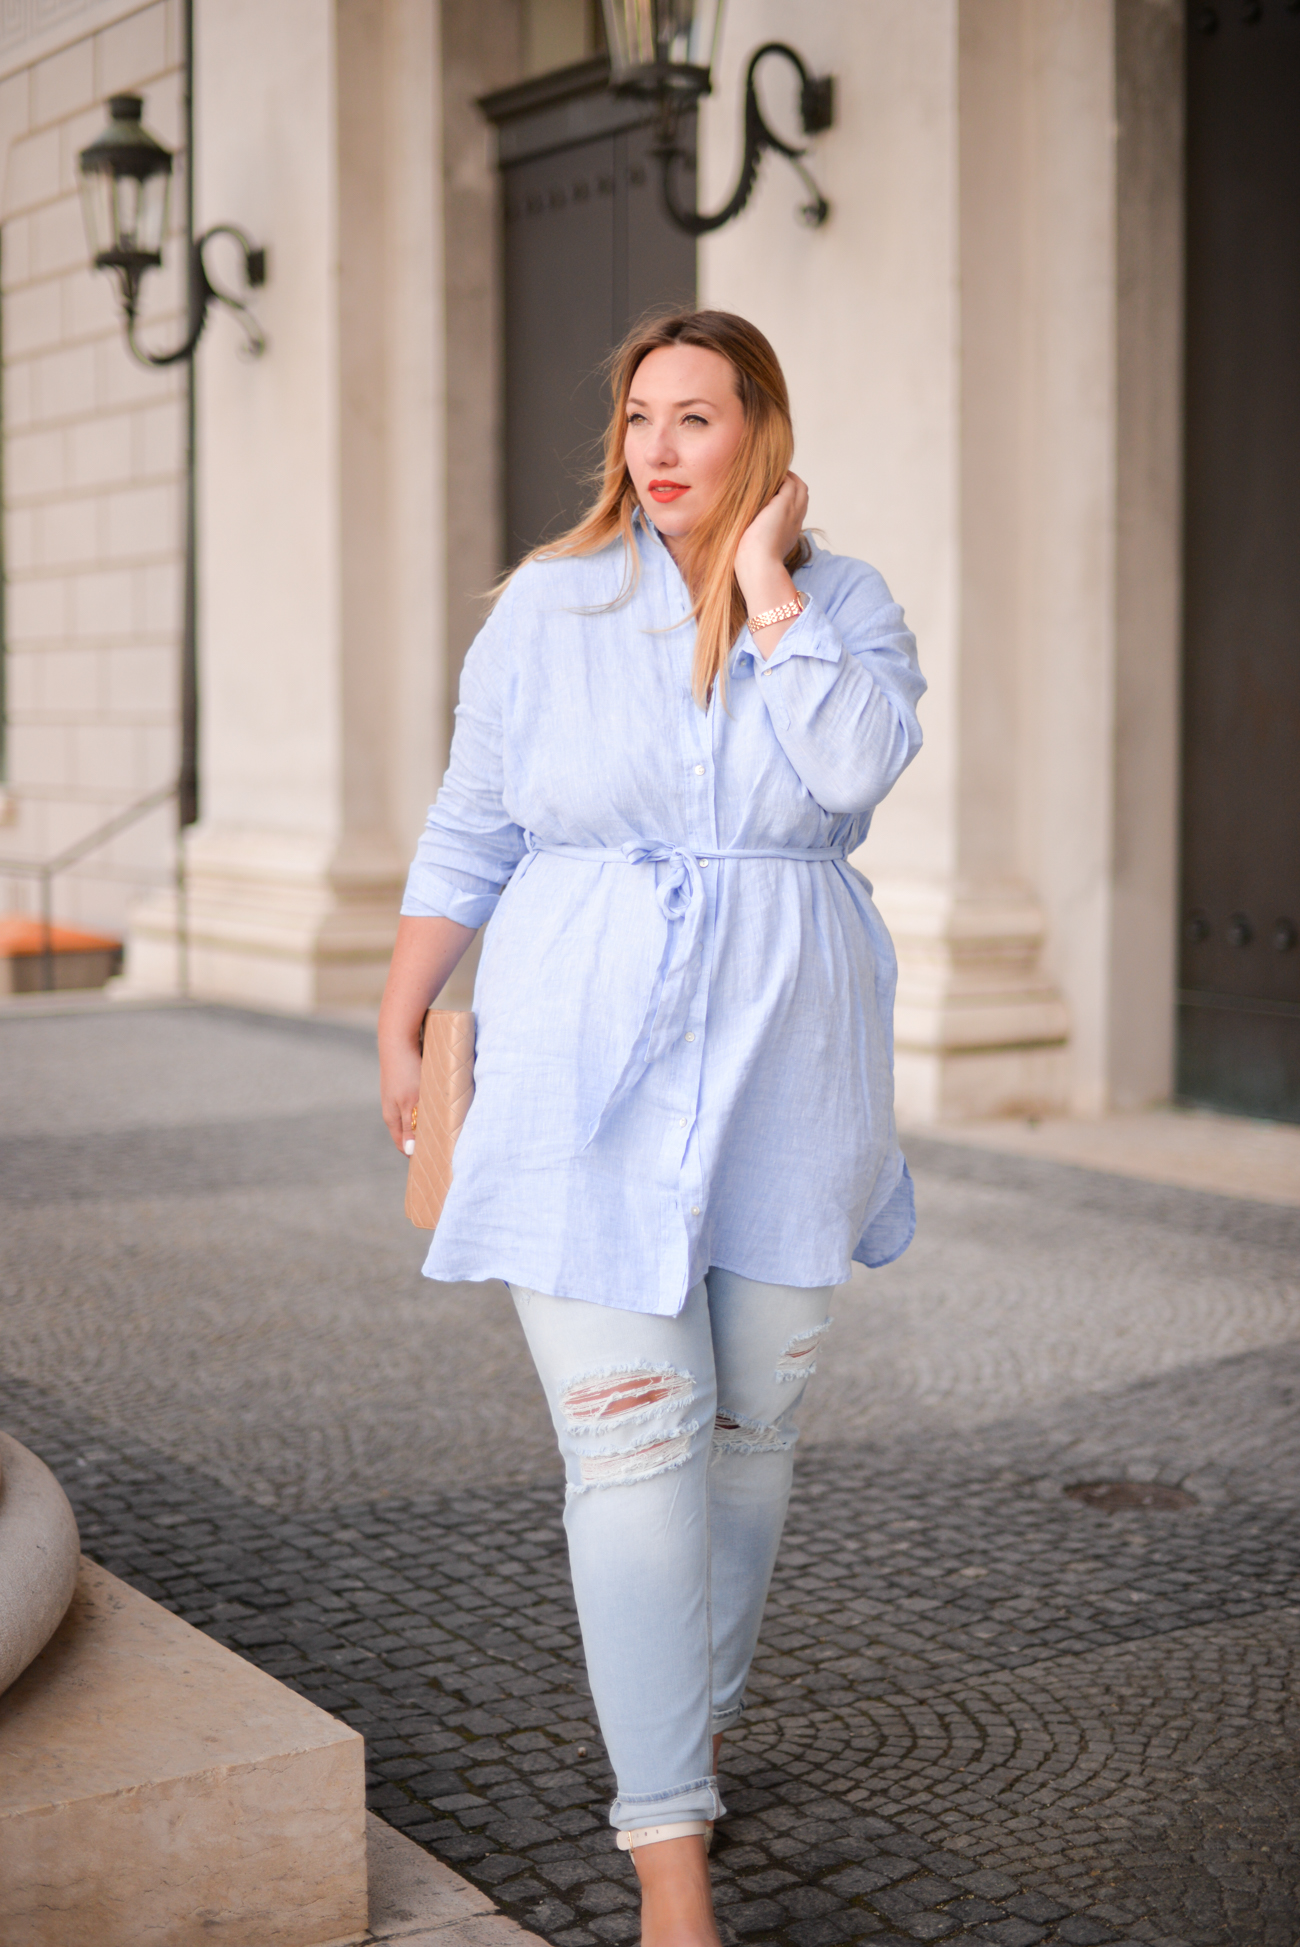 Plussize Blog_Blogger_Fashion Blog München_Theskinnyandthecurvyone_Plus-Size Blog Deutschland_Curvy Blogger_German Blogger_German Plus-Size (21 von 21)